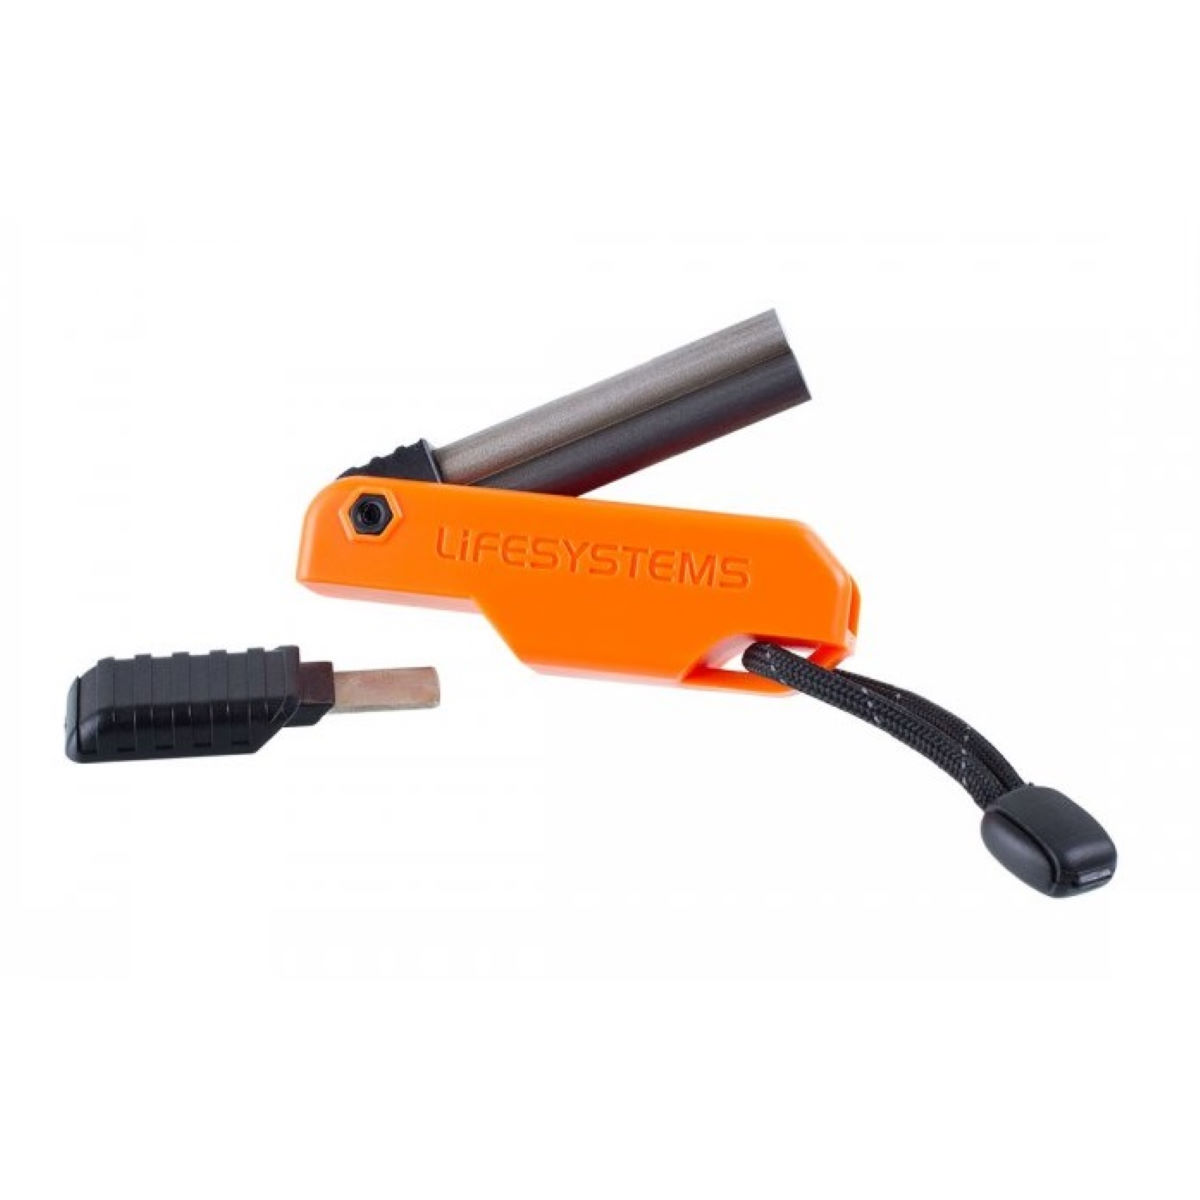 Lifesystems Dual Action Firestarter - Internal